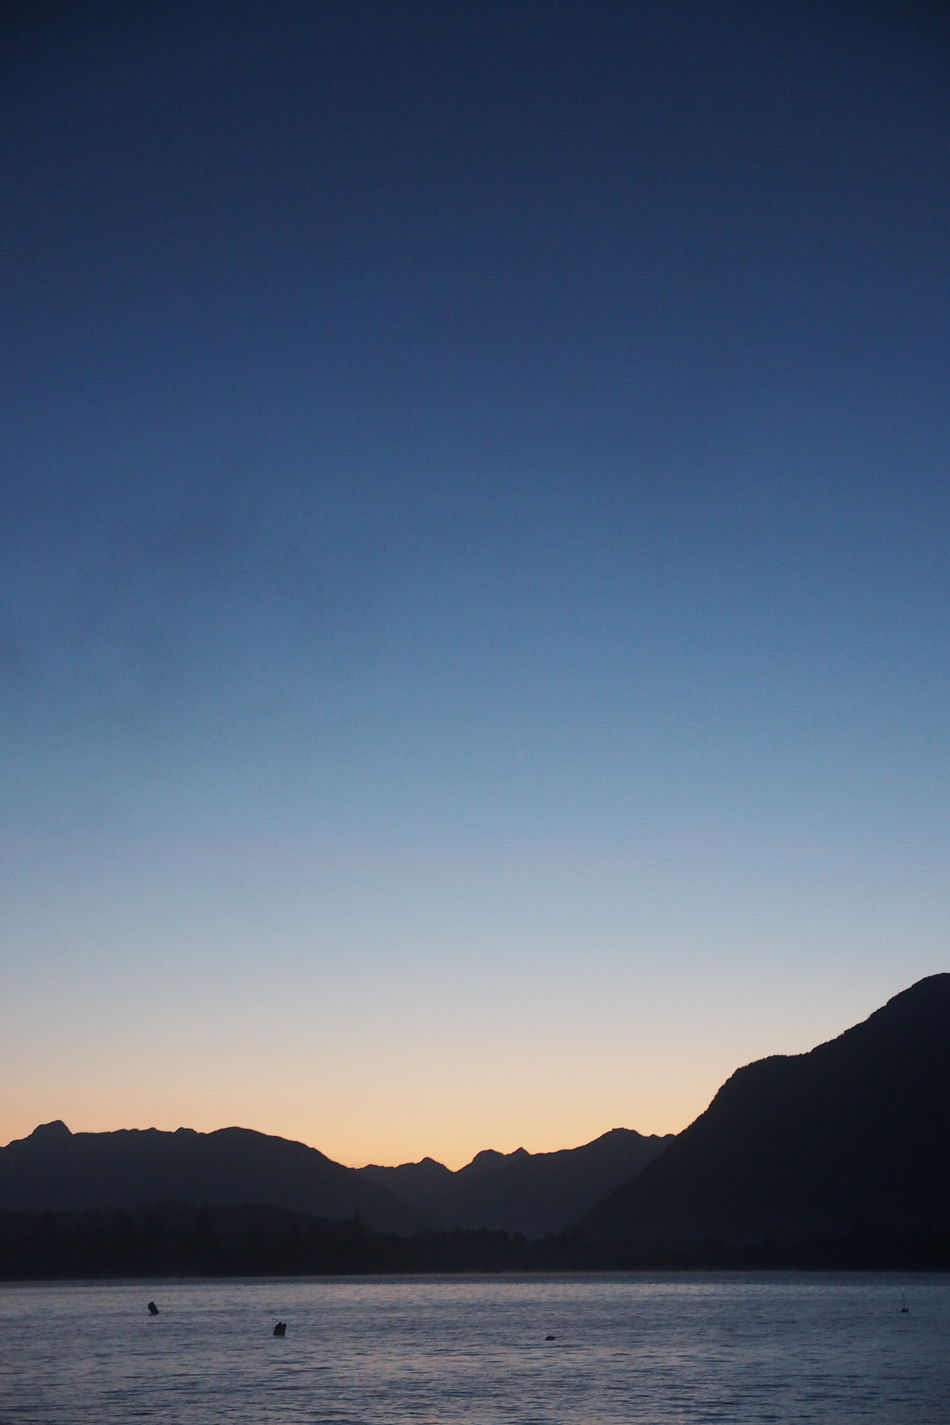 Beauty In Nature Day Mountain Nature No People Outdoors Scenics Silhouette Sky Sunset Tranquil Scene Tranquility Water